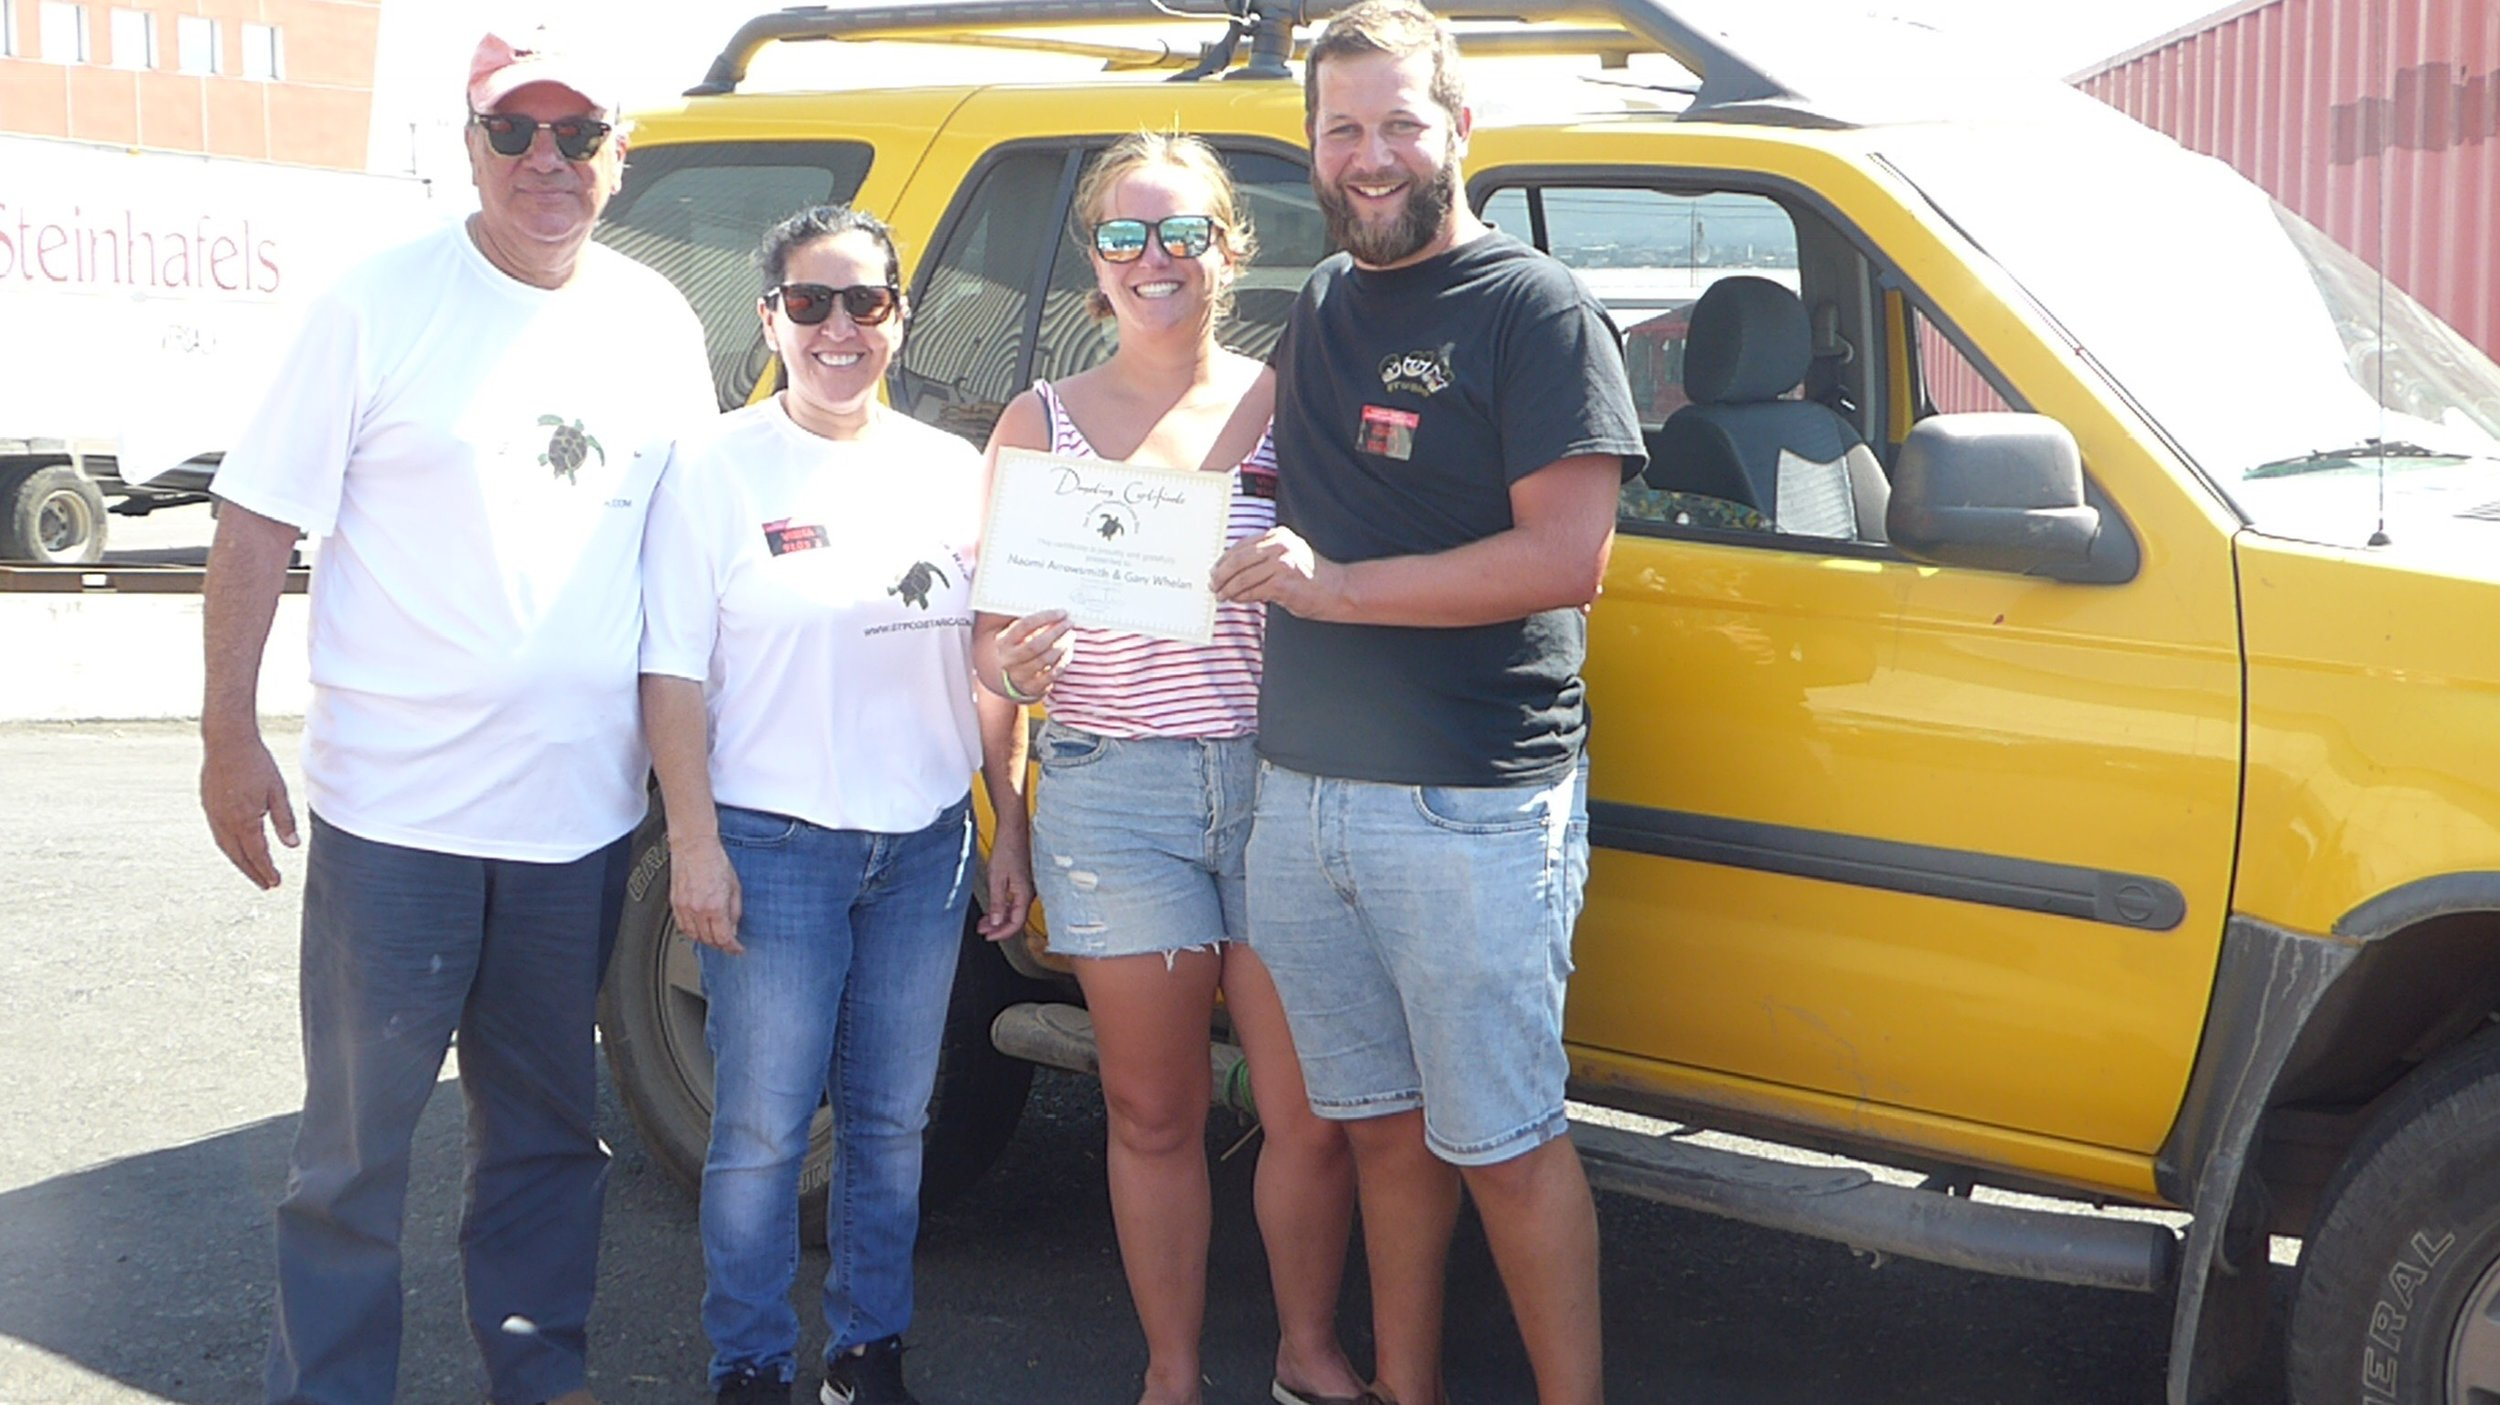 Gary-and-Naomi-Brits-donating-American-purchased-4x4-SUV-ute-vehicle-to-costa-rican-turtle-refuge